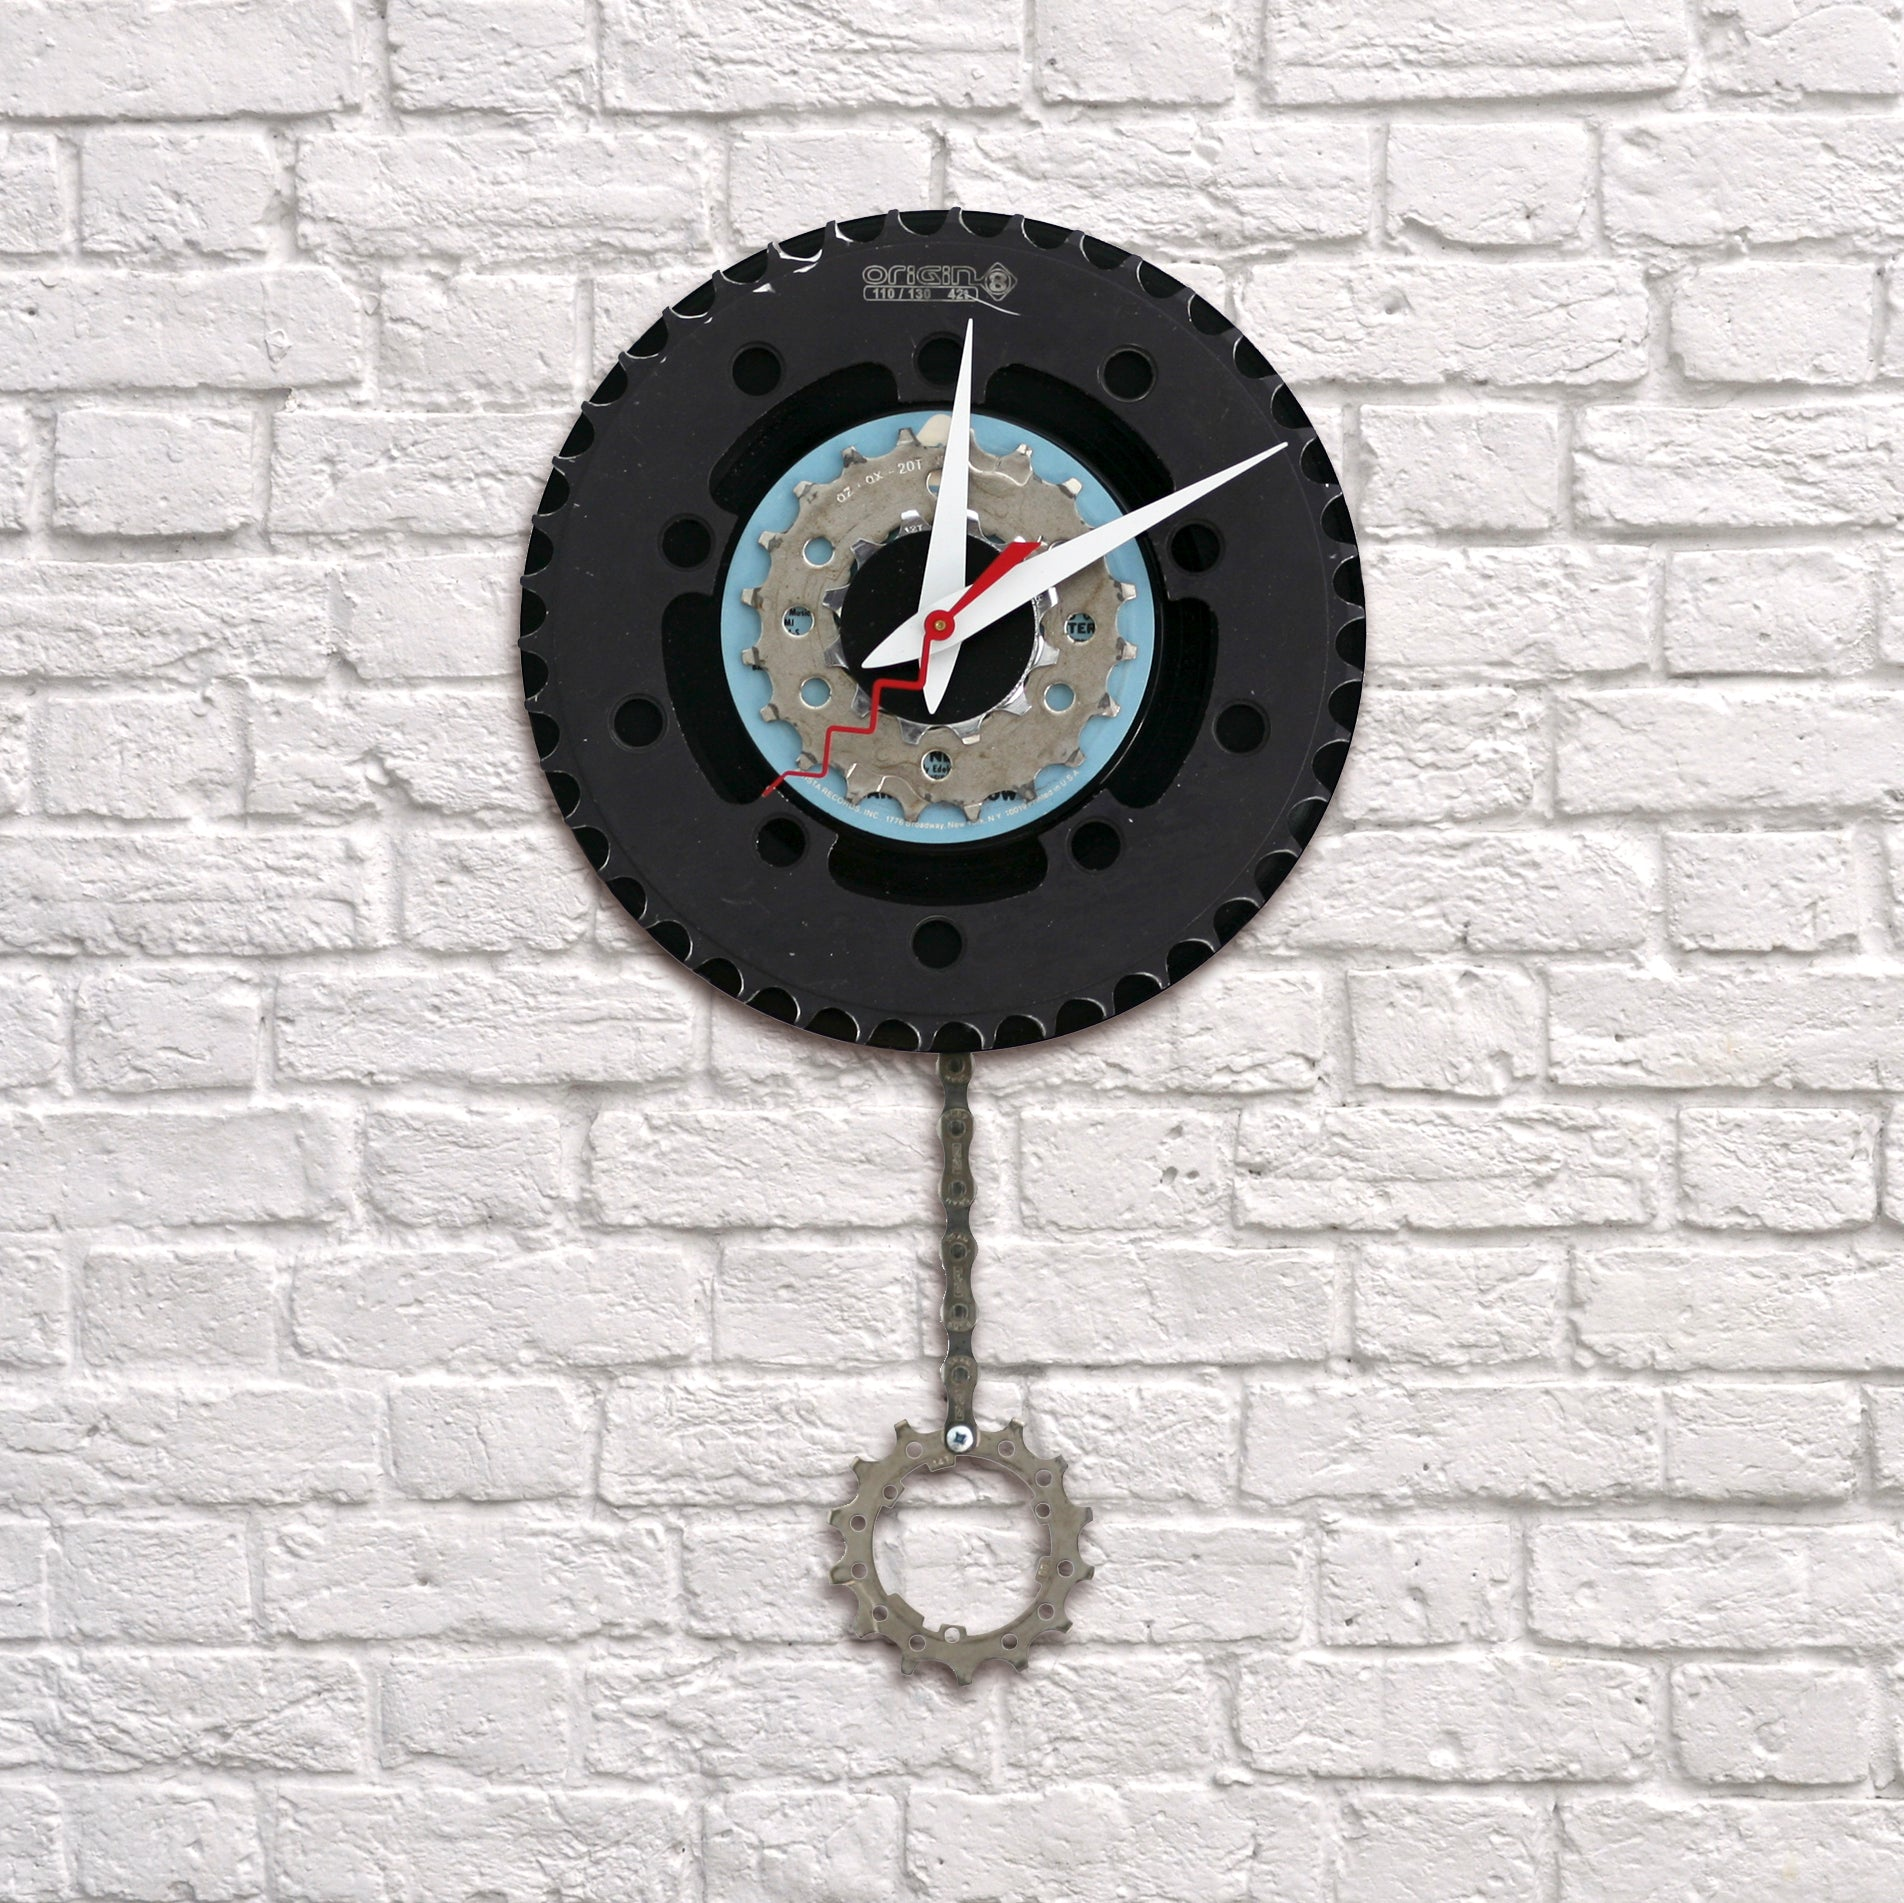 Clock - Bike Gear with Pendulum | Upcycled, Recycled, Repurposed, Reimagined | Seeds for Kindness